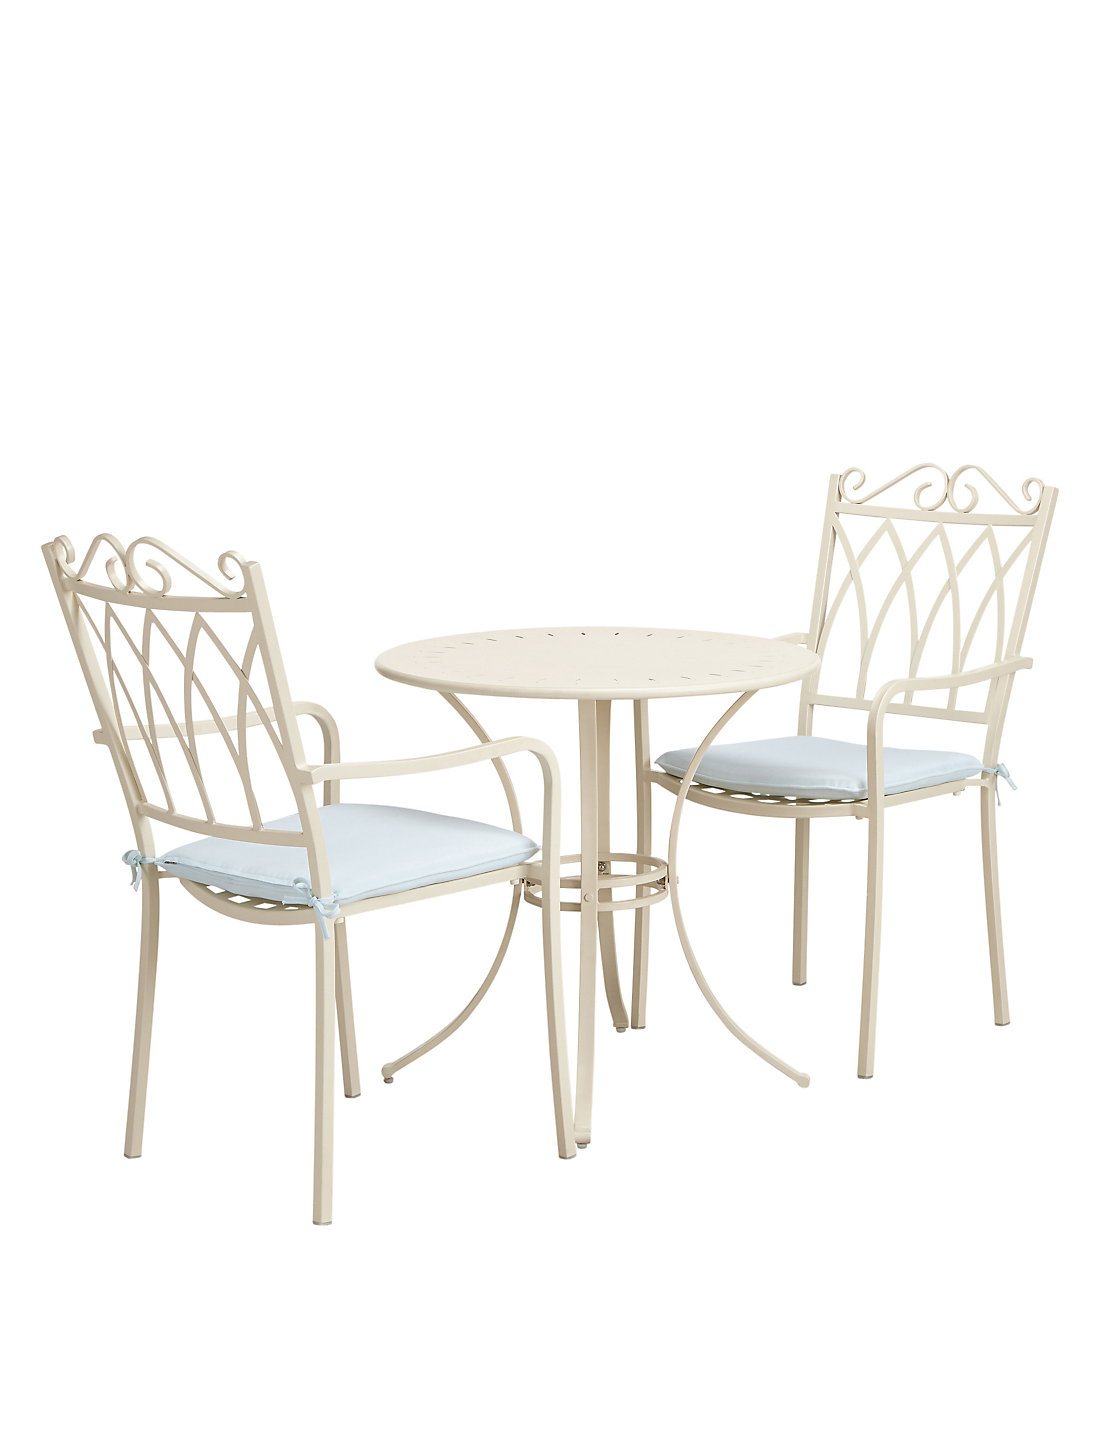 Prepossessing Metal Garden Furniture  Metal Furniture  Ms With Engaging Rosedale Table   Chairs  Cream With Astonishing Raised Garden Bed Bird Netting Also Home And Garden Gifts In Addition Mushrooms In The Garden And Arcadian Gardens As Well As Best Shops In Covent Garden Additionally Waterperry Gardens Oxford From Marksandspencercom With   Engaging Metal Garden Furniture  Metal Furniture  Ms With Astonishing Rosedale Table   Chairs  Cream And Prepossessing Raised Garden Bed Bird Netting Also Home And Garden Gifts In Addition Mushrooms In The Garden From Marksandspencercom